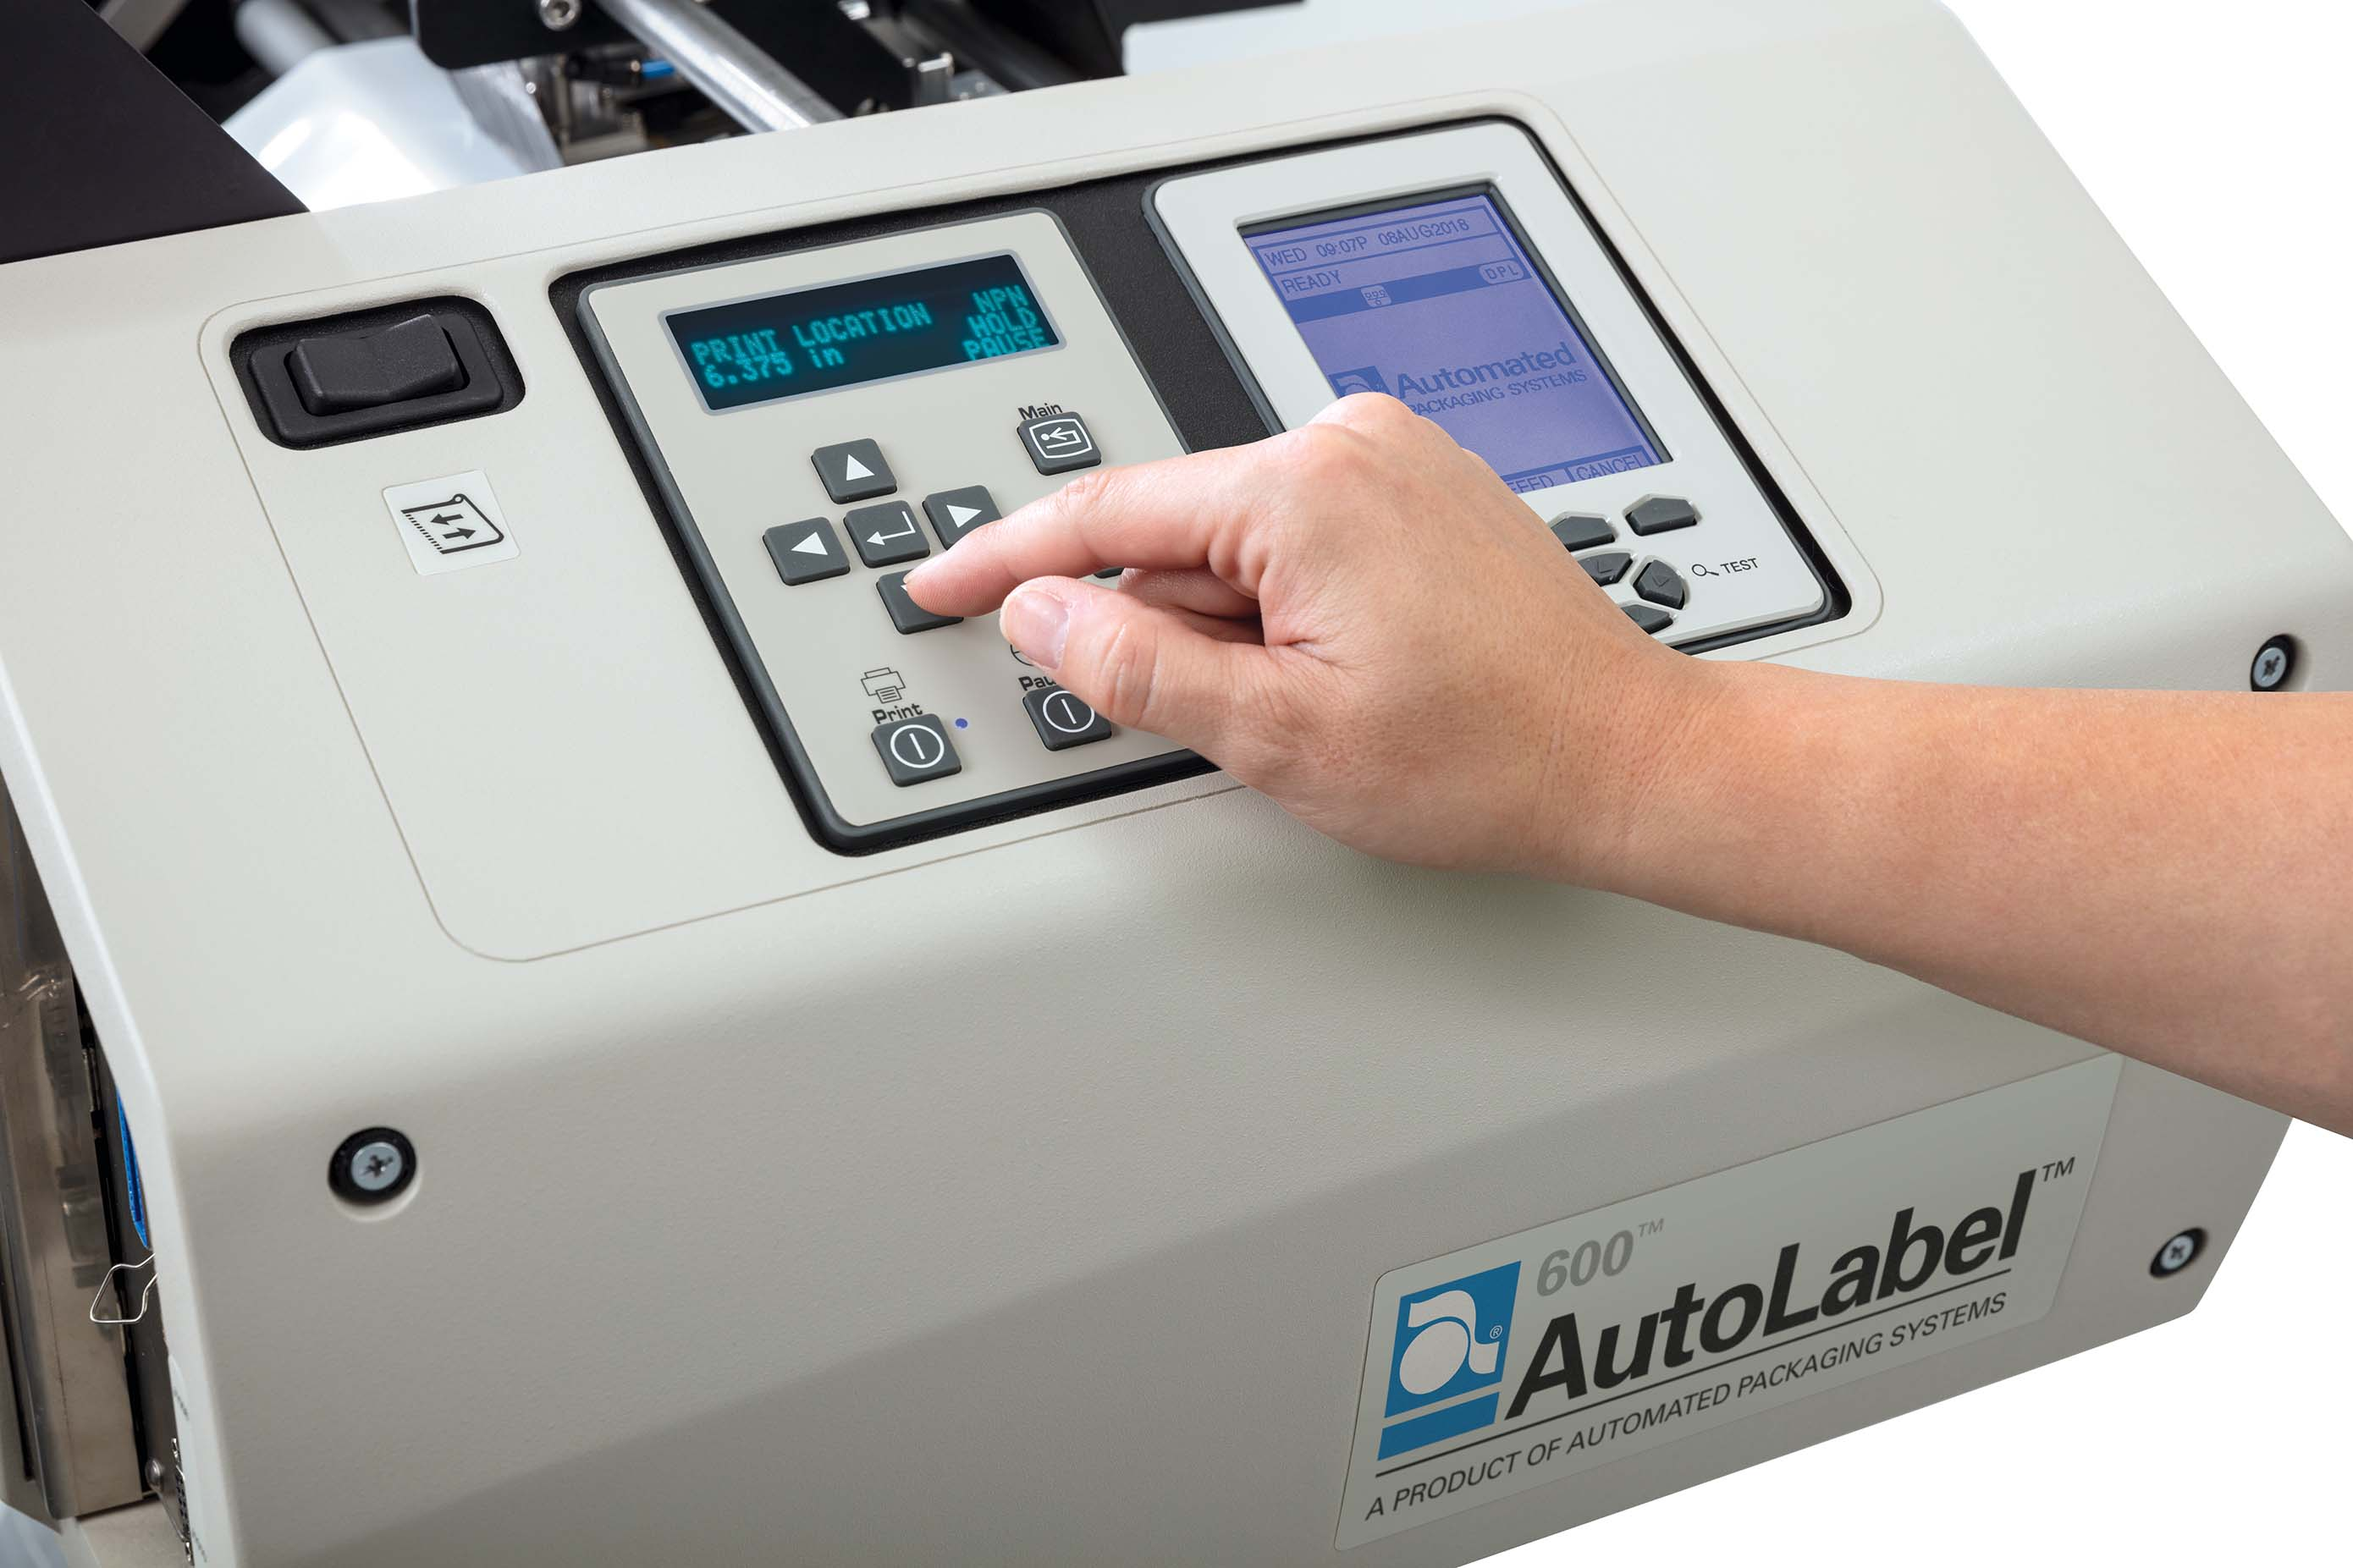 AutoLabel 600 Wide Precision Location Adjustment